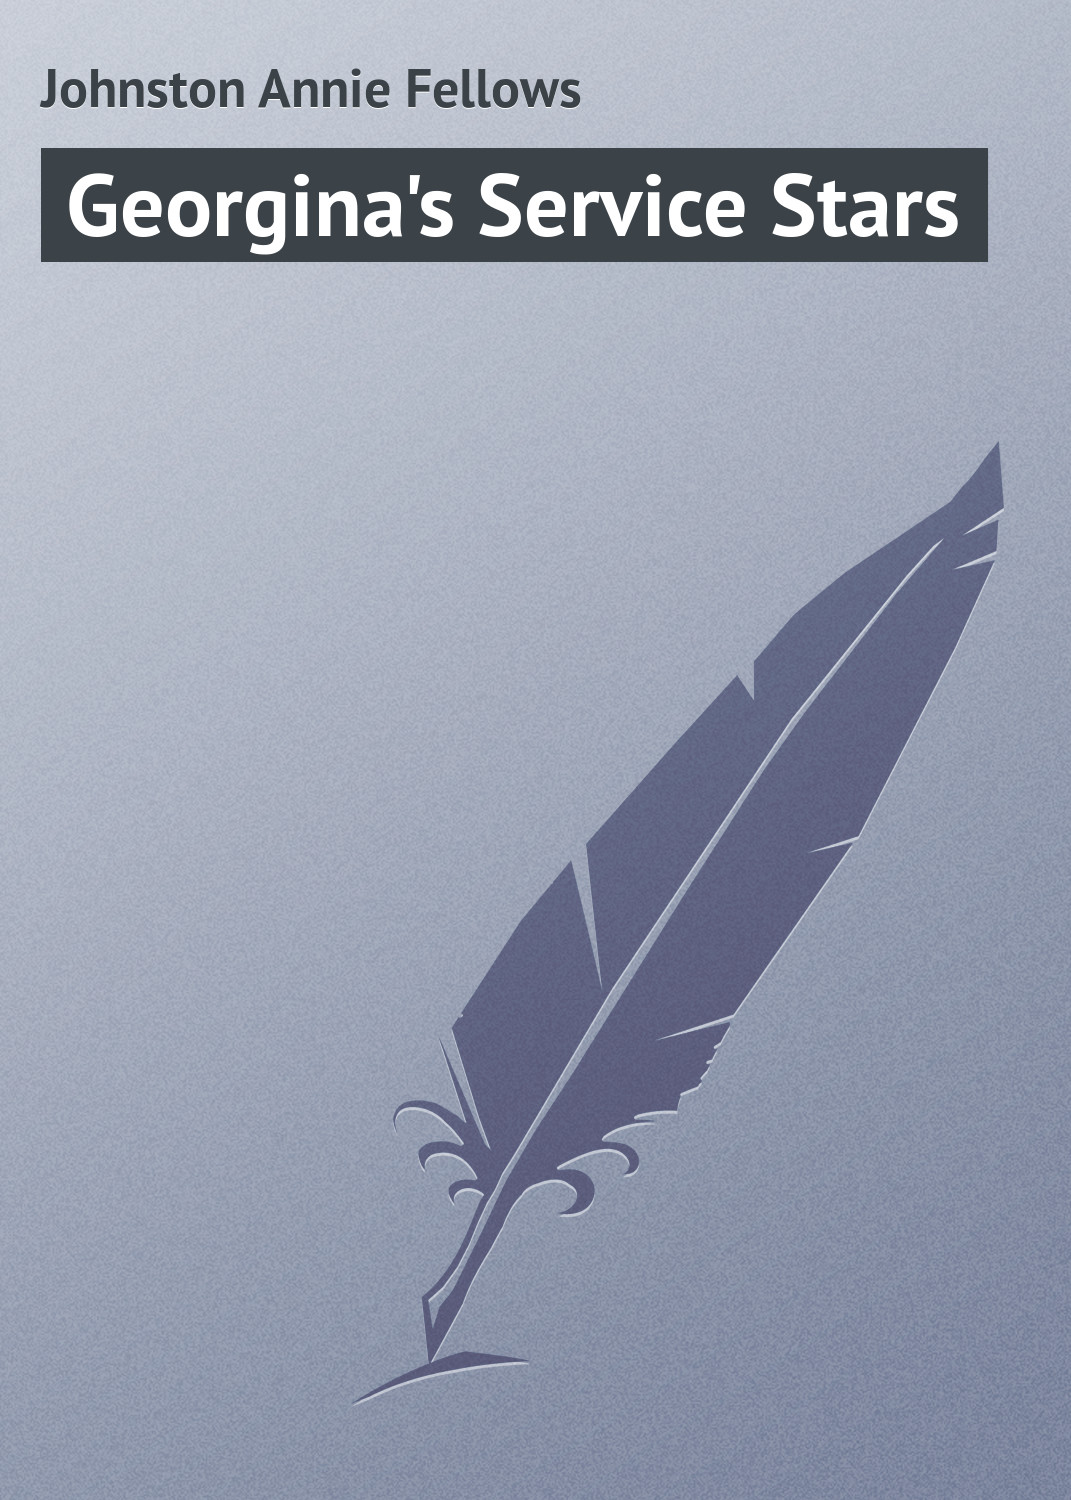 цена Johnston Annie Fellows Georgina's Service Stars онлайн в 2017 году